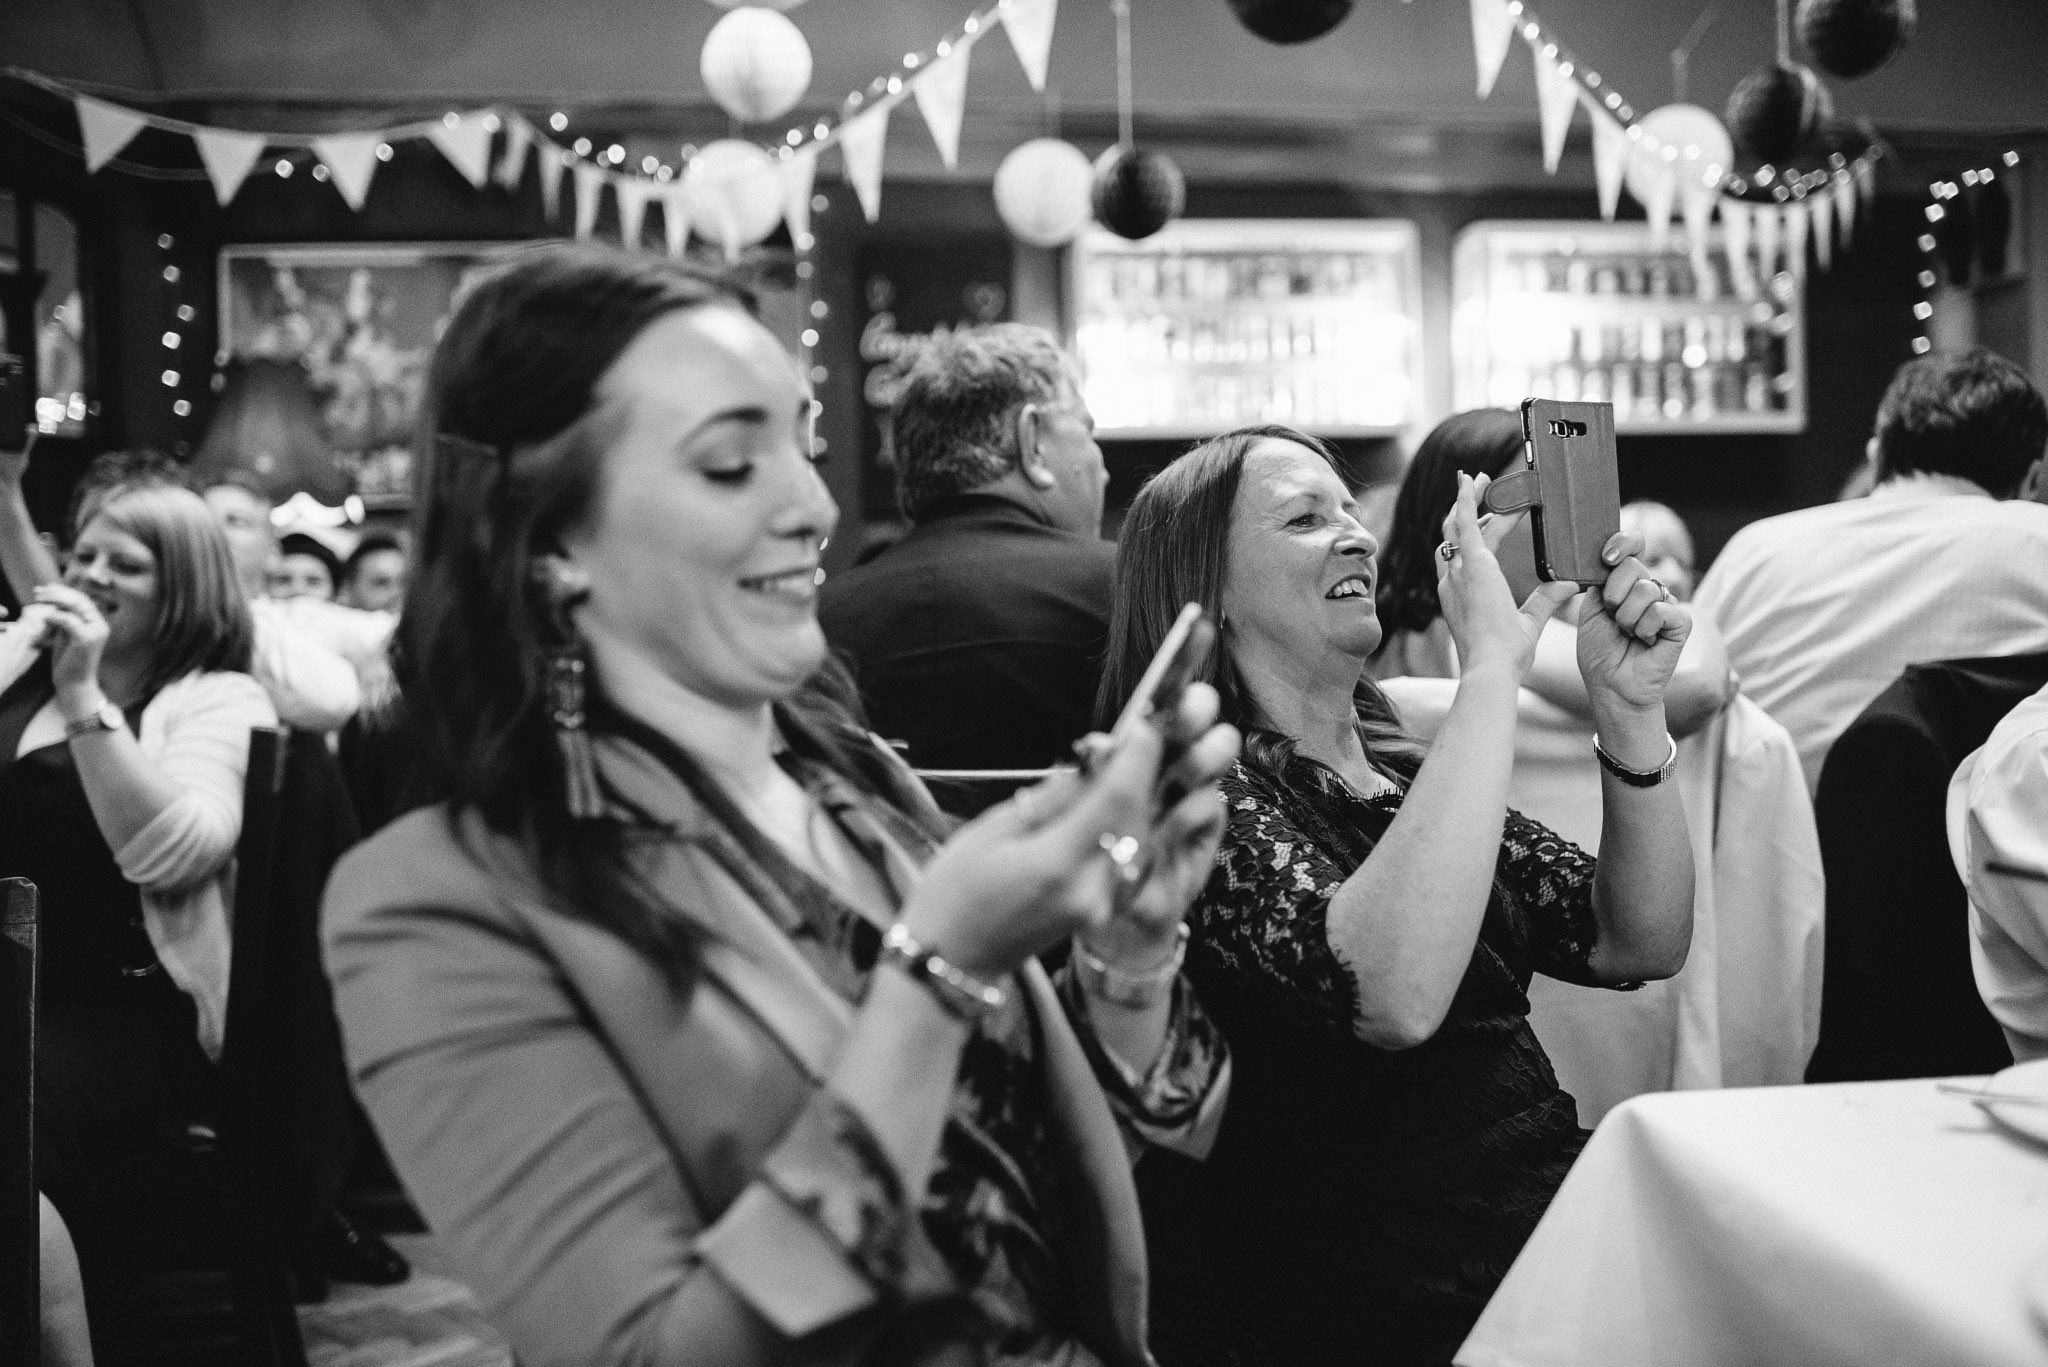 Wedding pictures in the londesborough pub in stoke newington town hall wedding by creative and alternative london wedding photographer the shannons photography